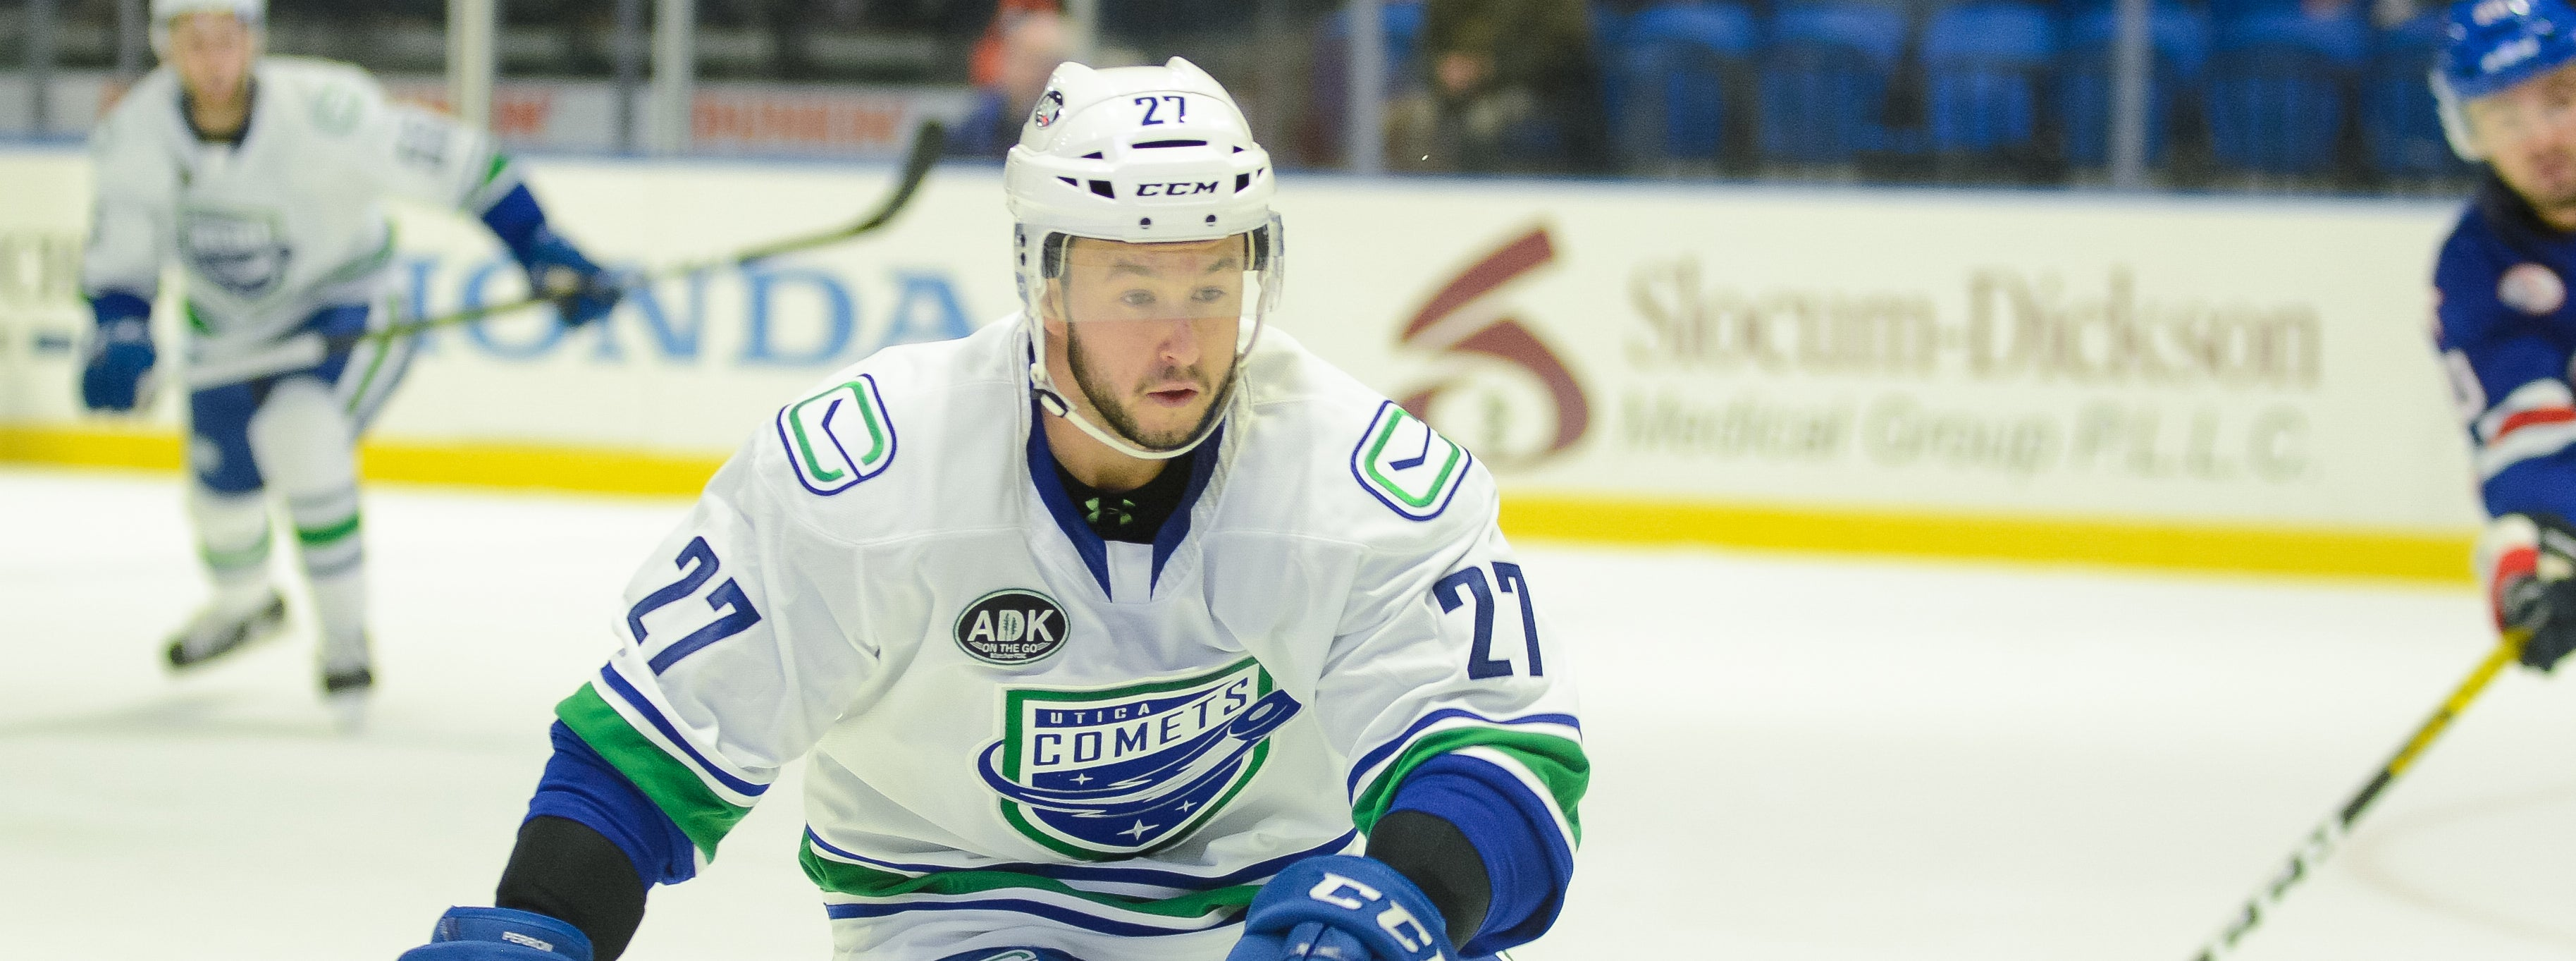 COMETS BATTLE AMERKS FOR SECOND TIME IN A WEEK